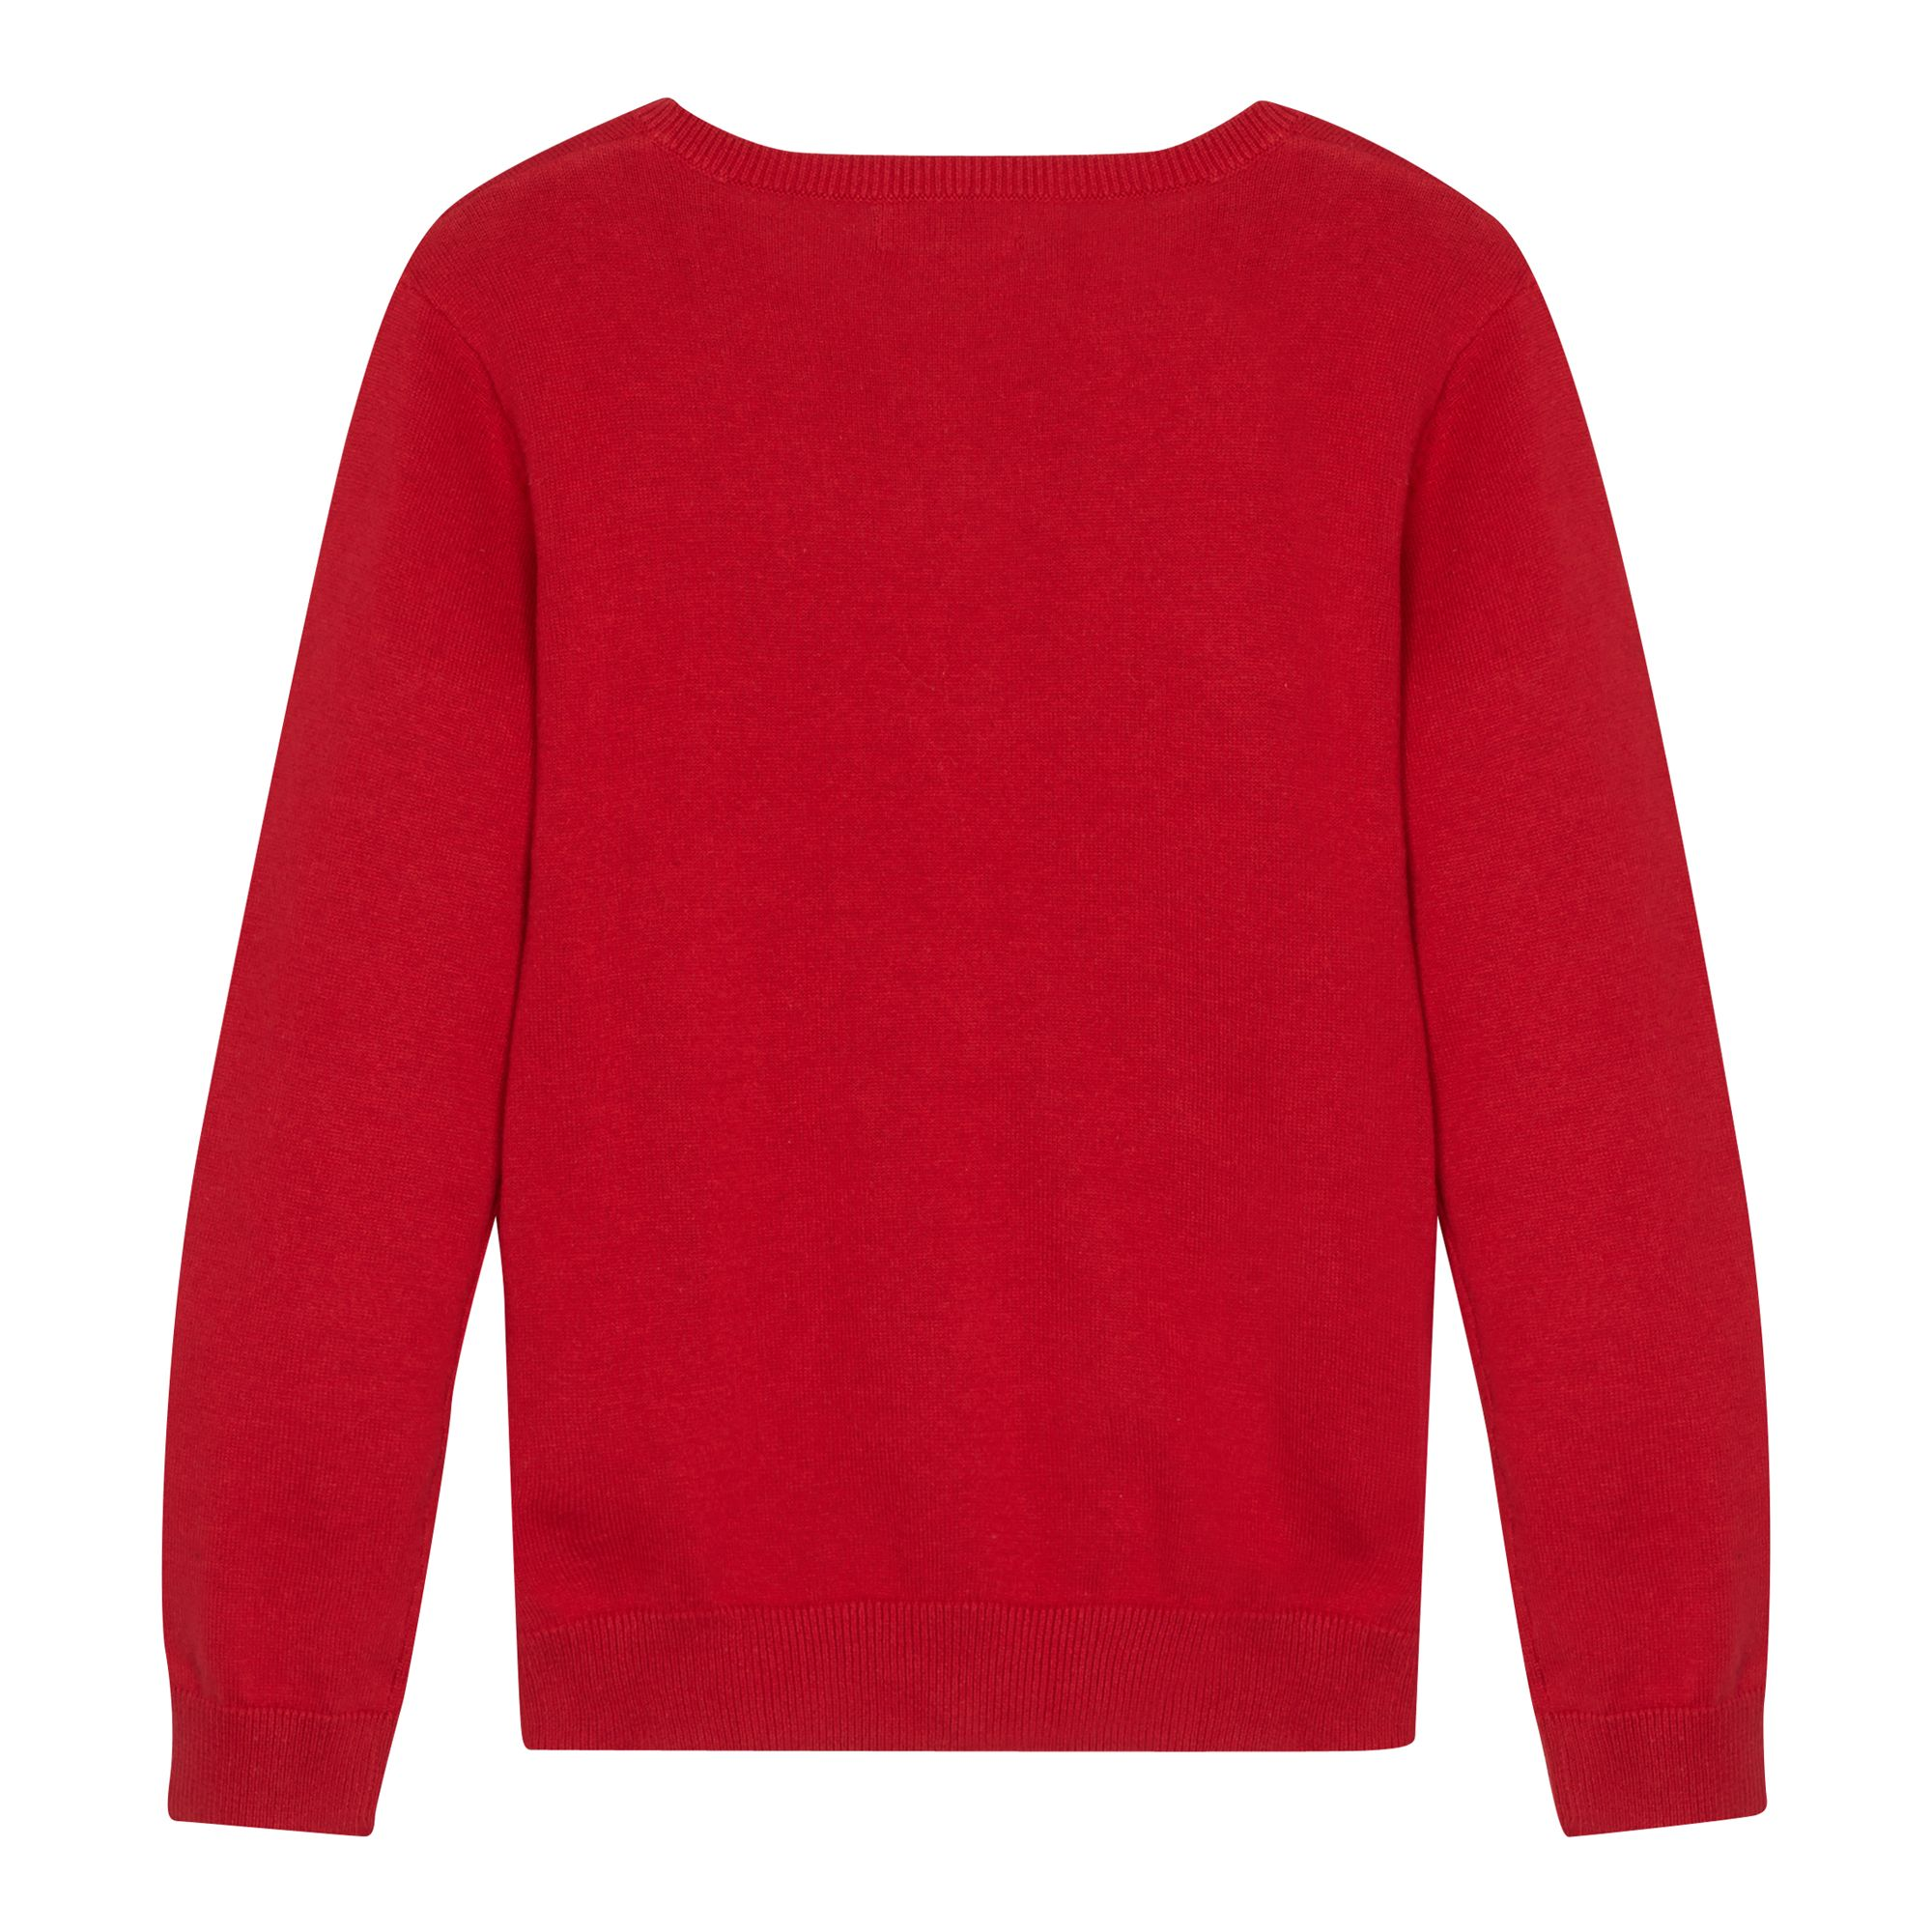 Product Features cut and this jumper fit your girl It is a dress your girls could.